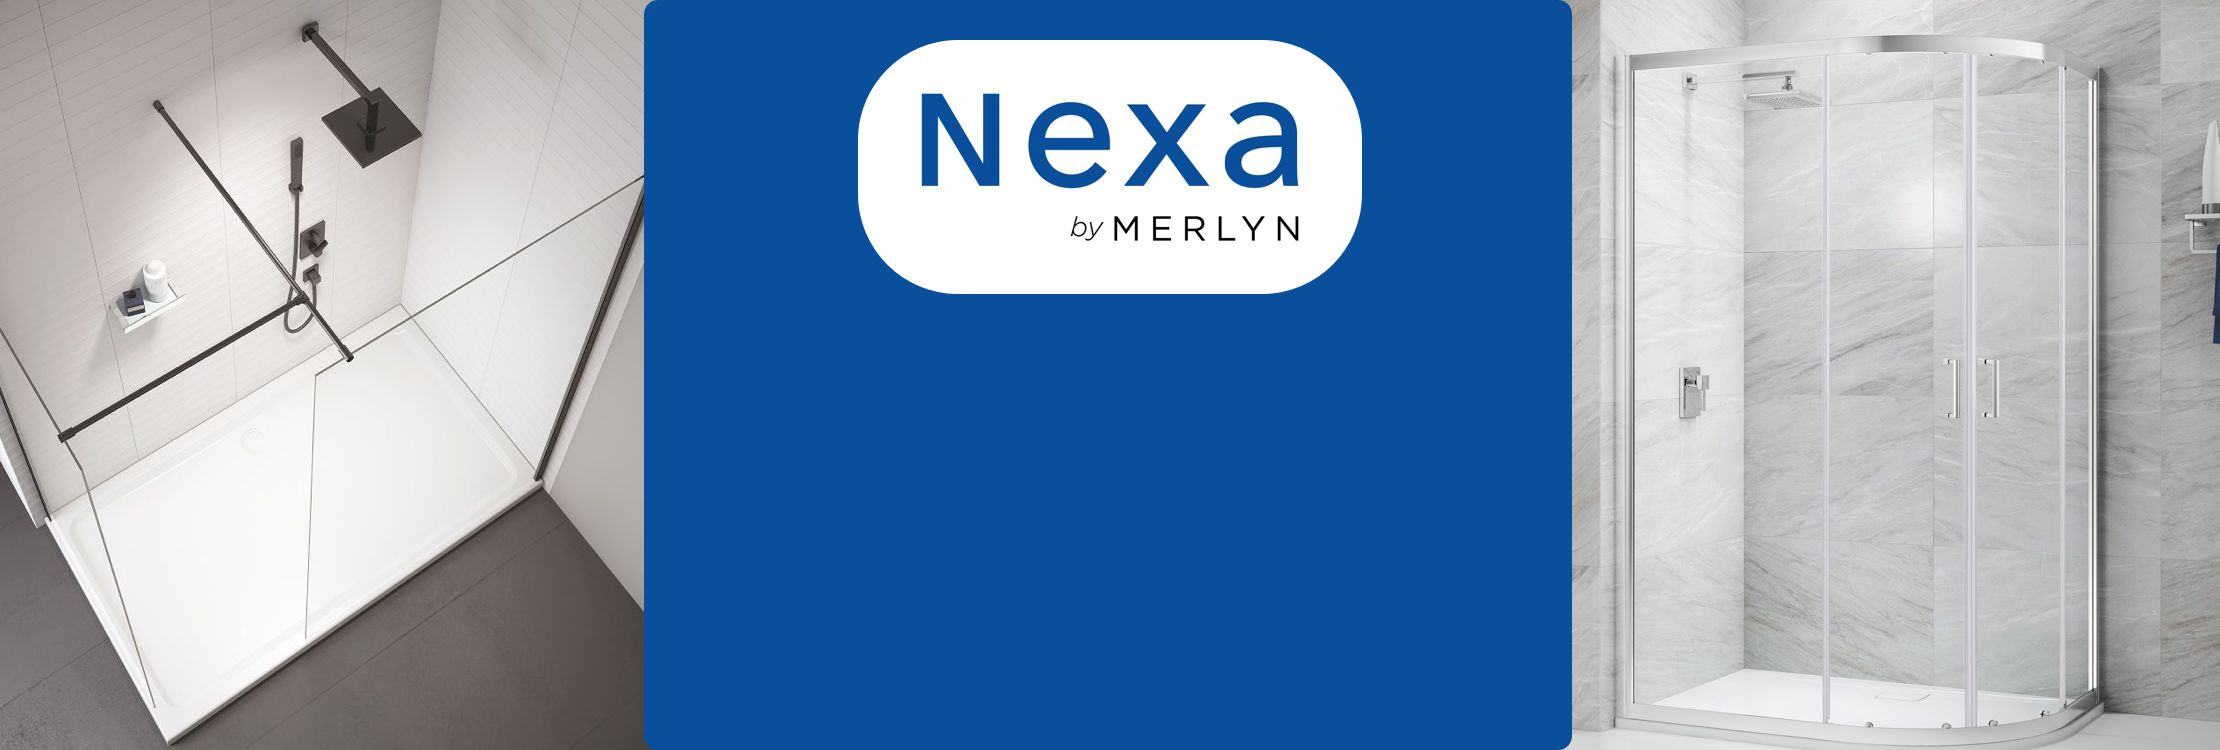 Nexa by MERLYN<br>Buying Guide